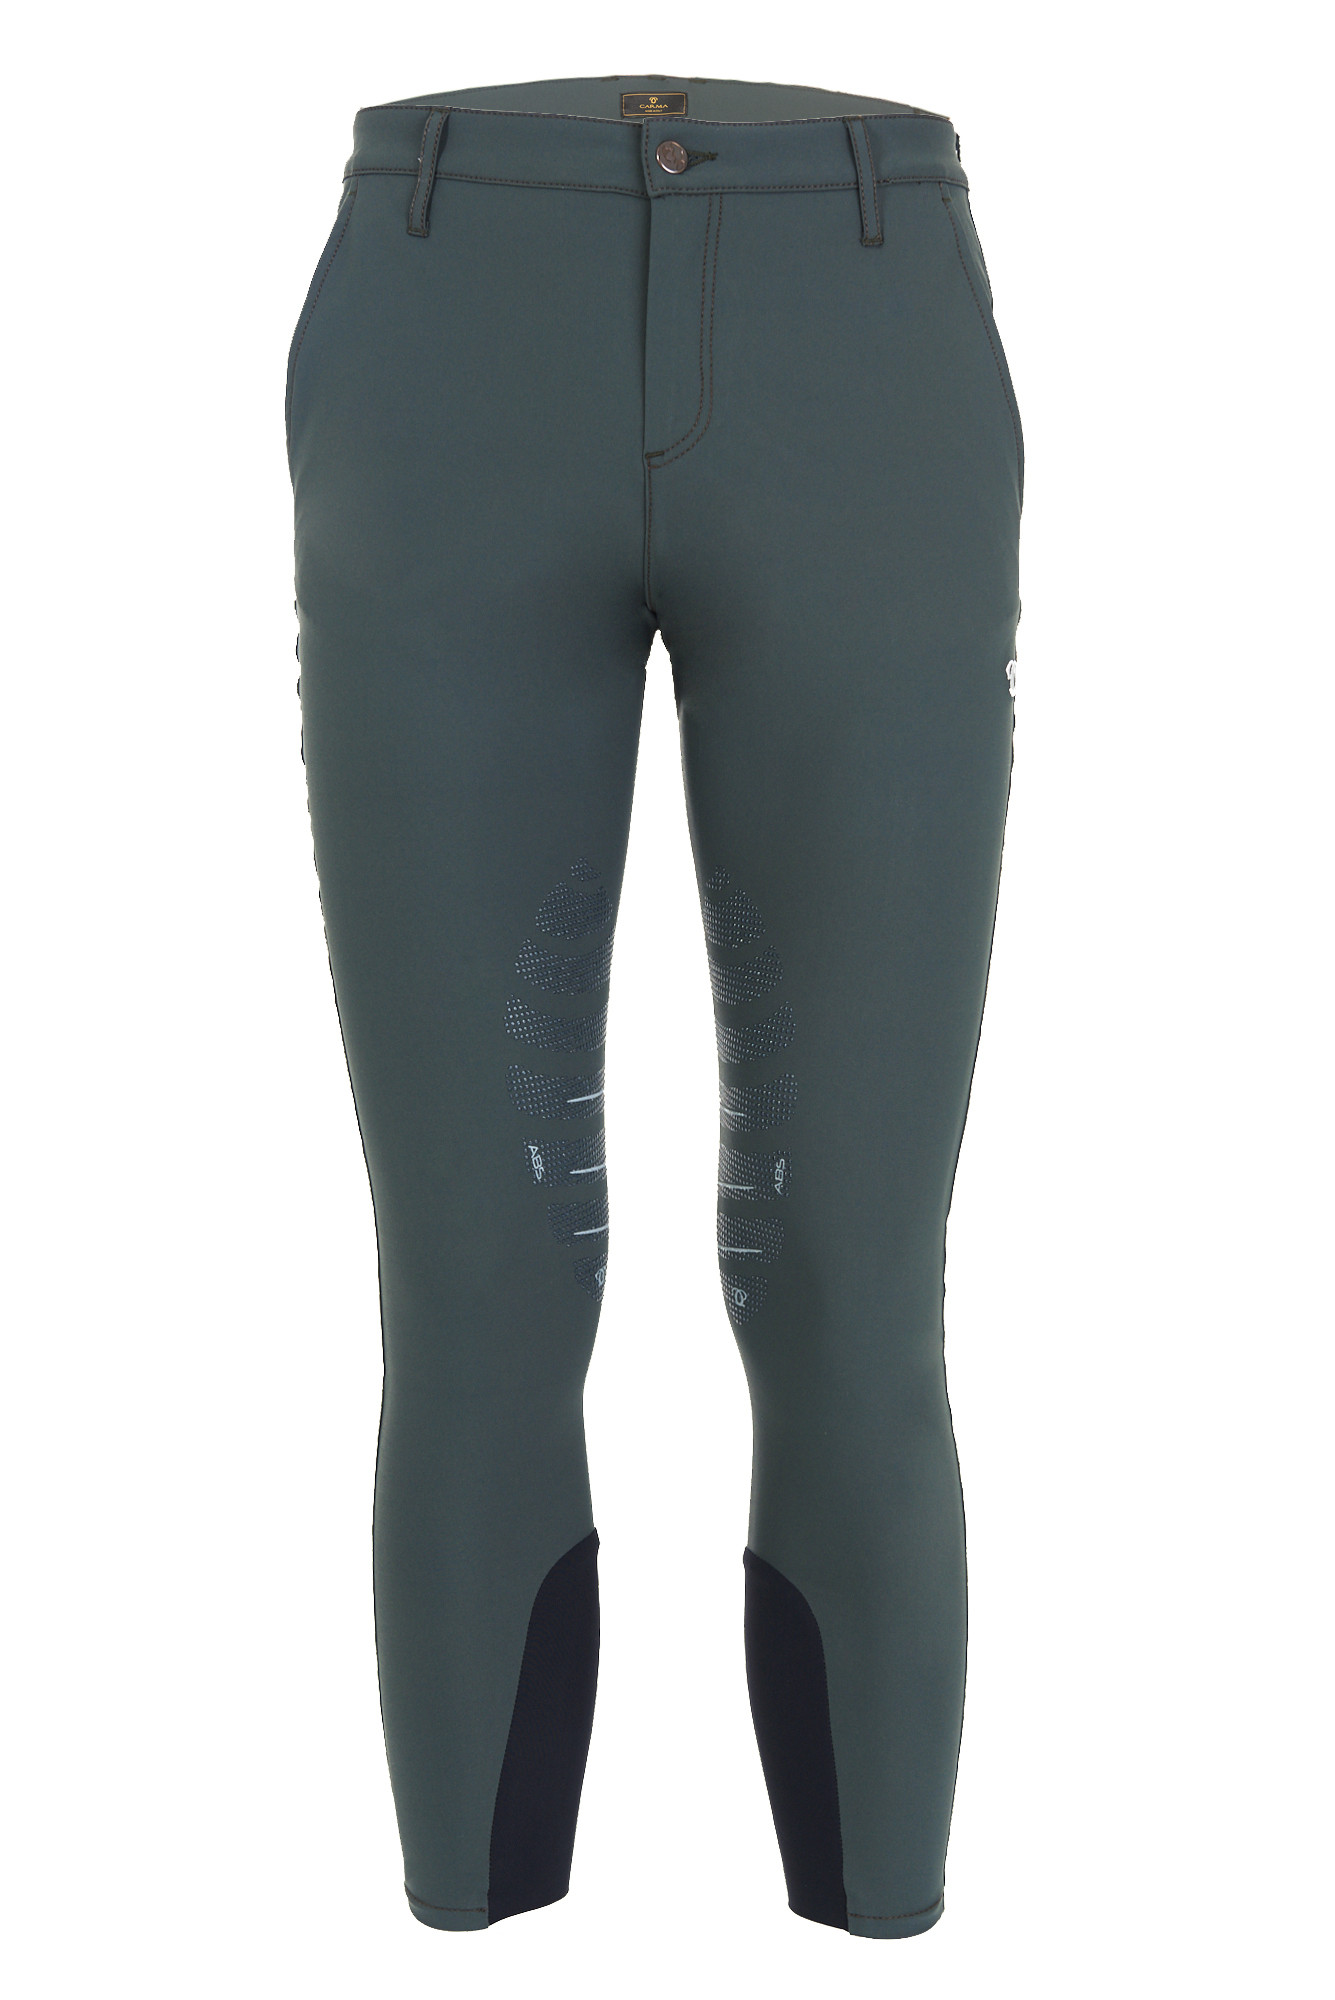 Carma Men's Monaco Breeches